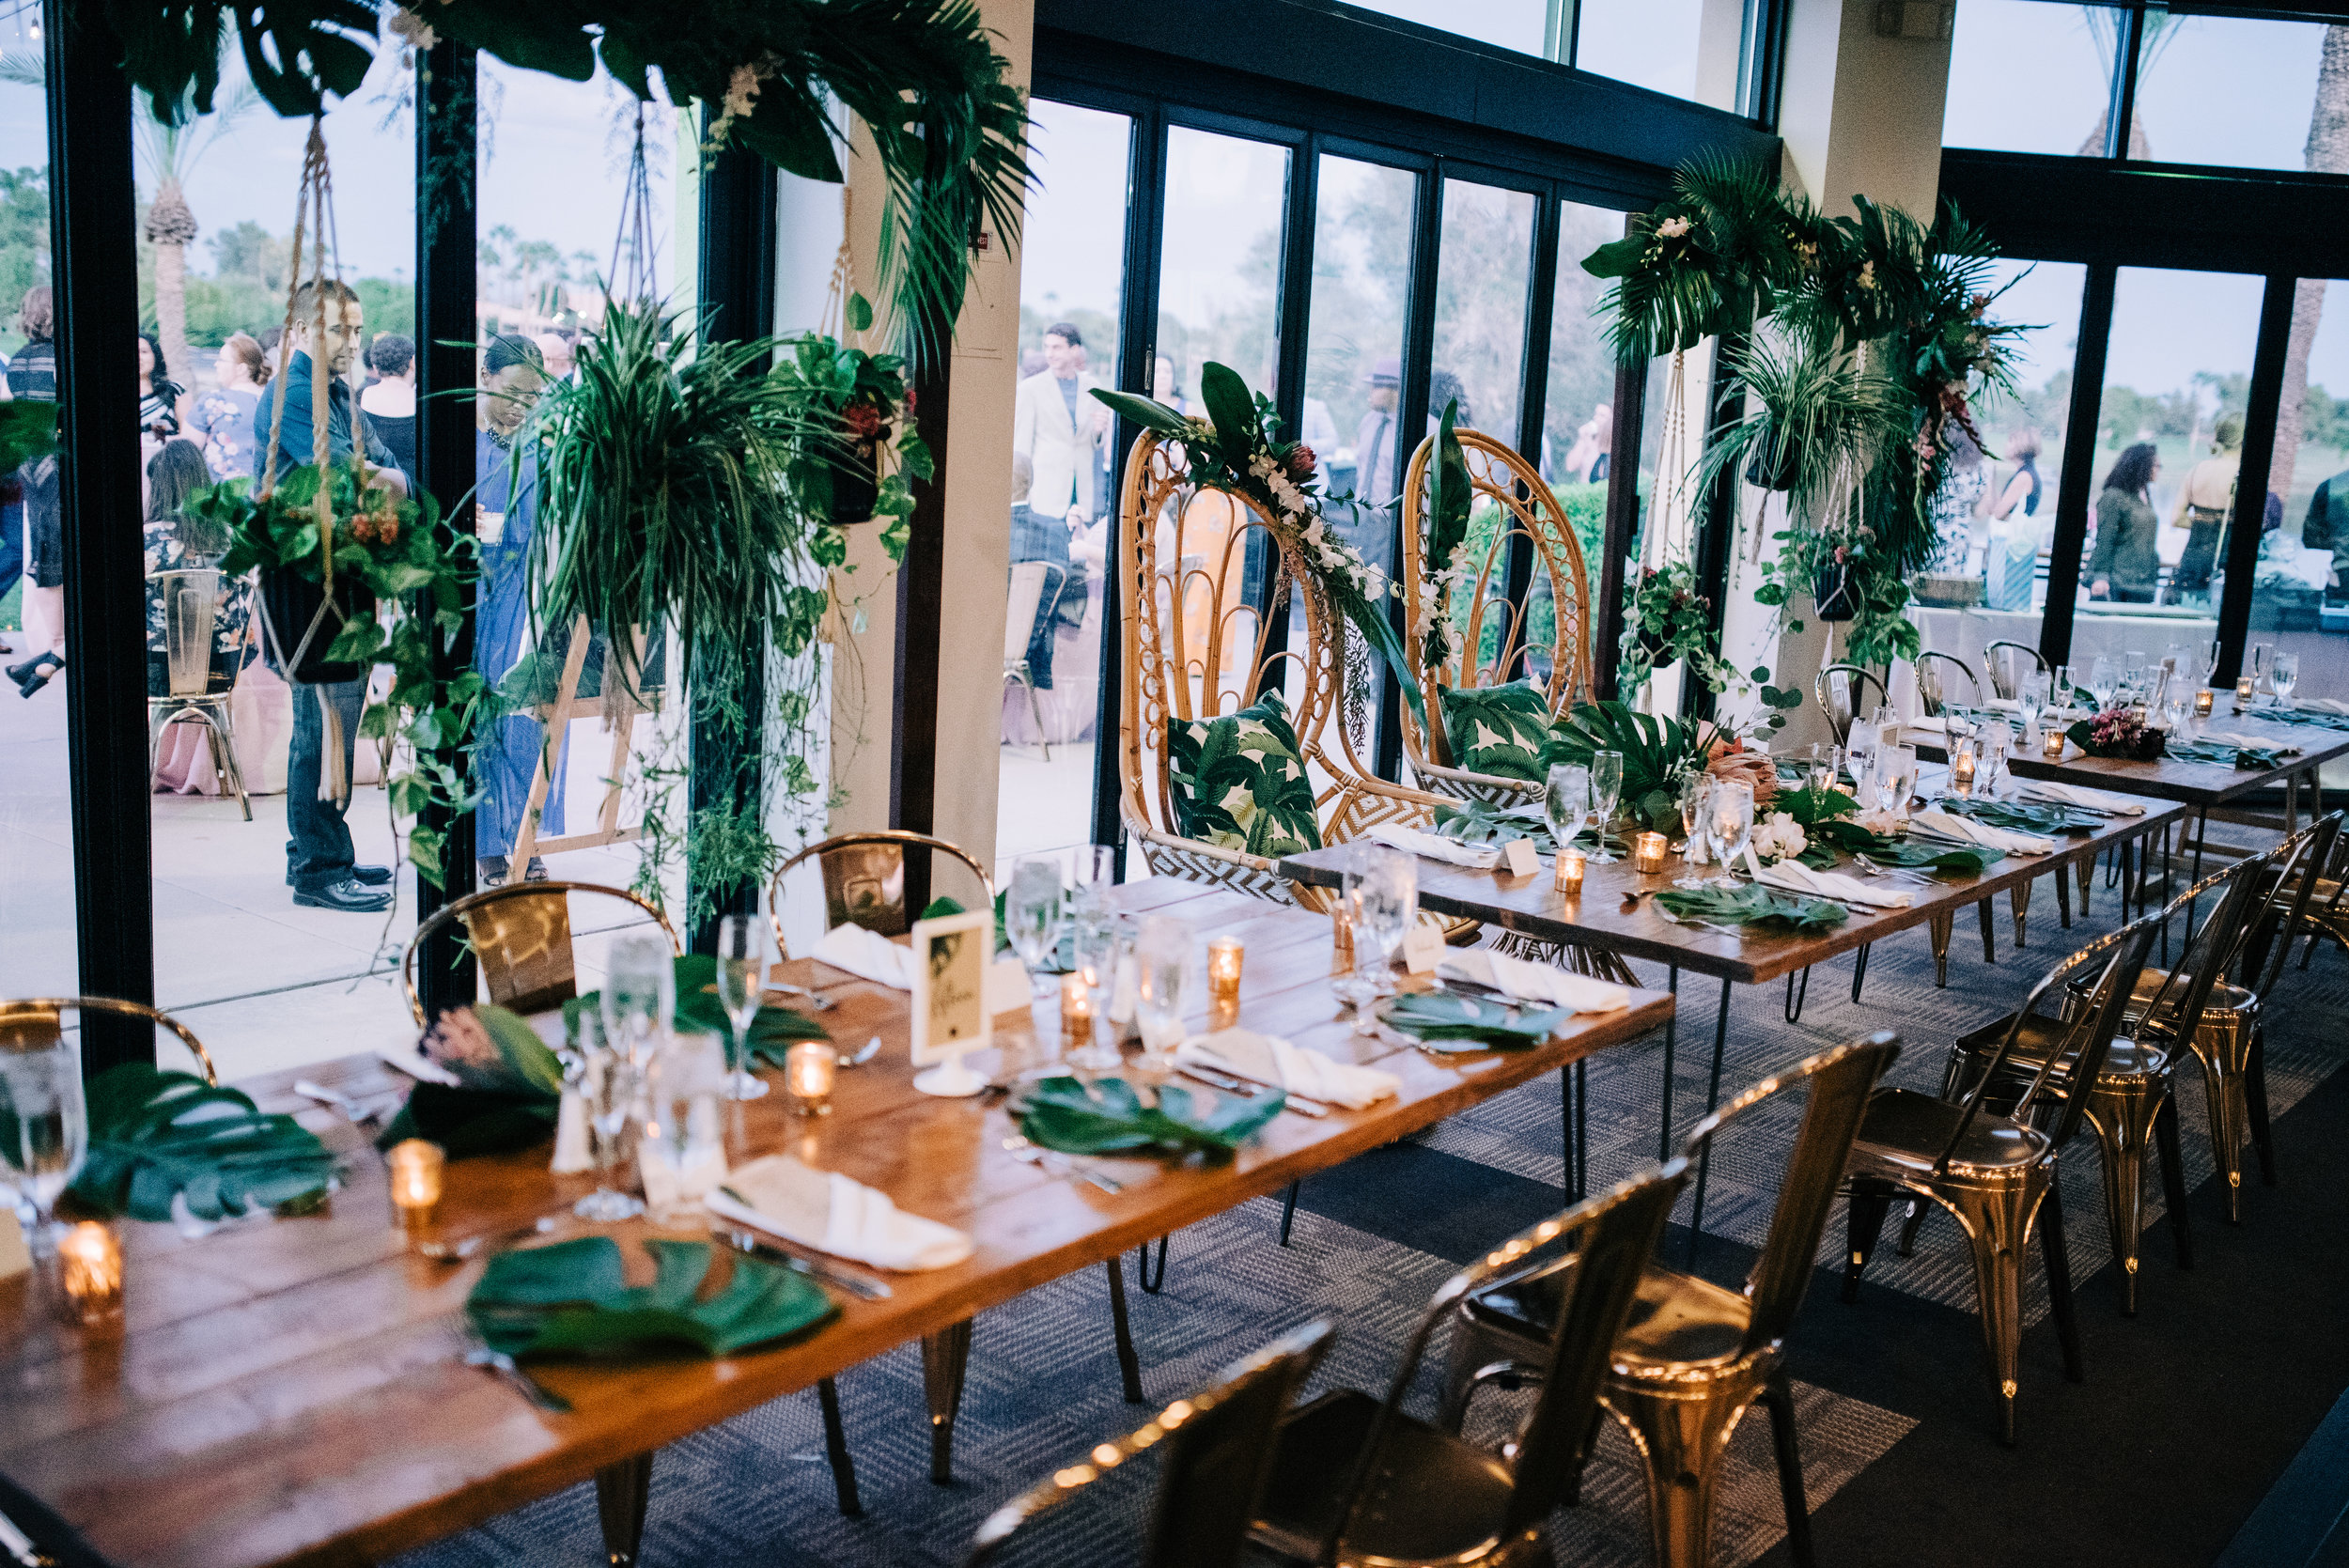 25 wedding reception head table tropical theme wedding tropical leaf arch floral arch candlelight dinner Life Design Events photos by Josh Snyder Photography.jpg